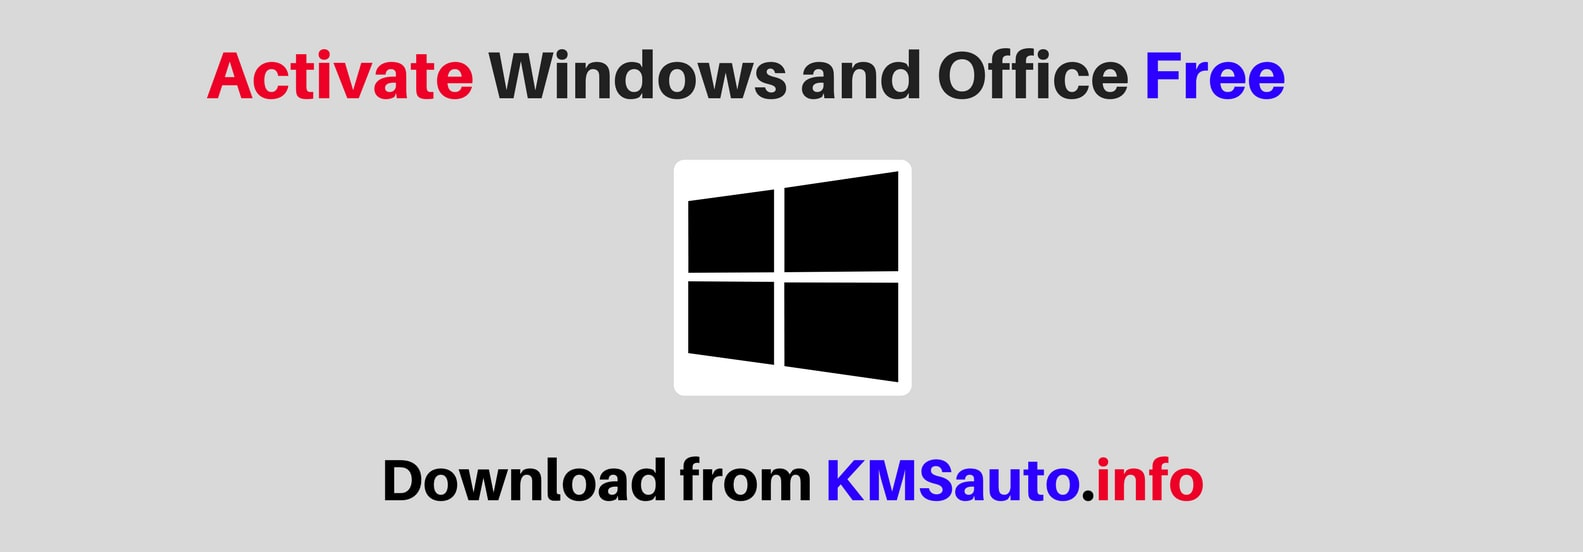 Office 2010 Gratuit A Telecharger The Kms Auto Net Activator 2019 Official